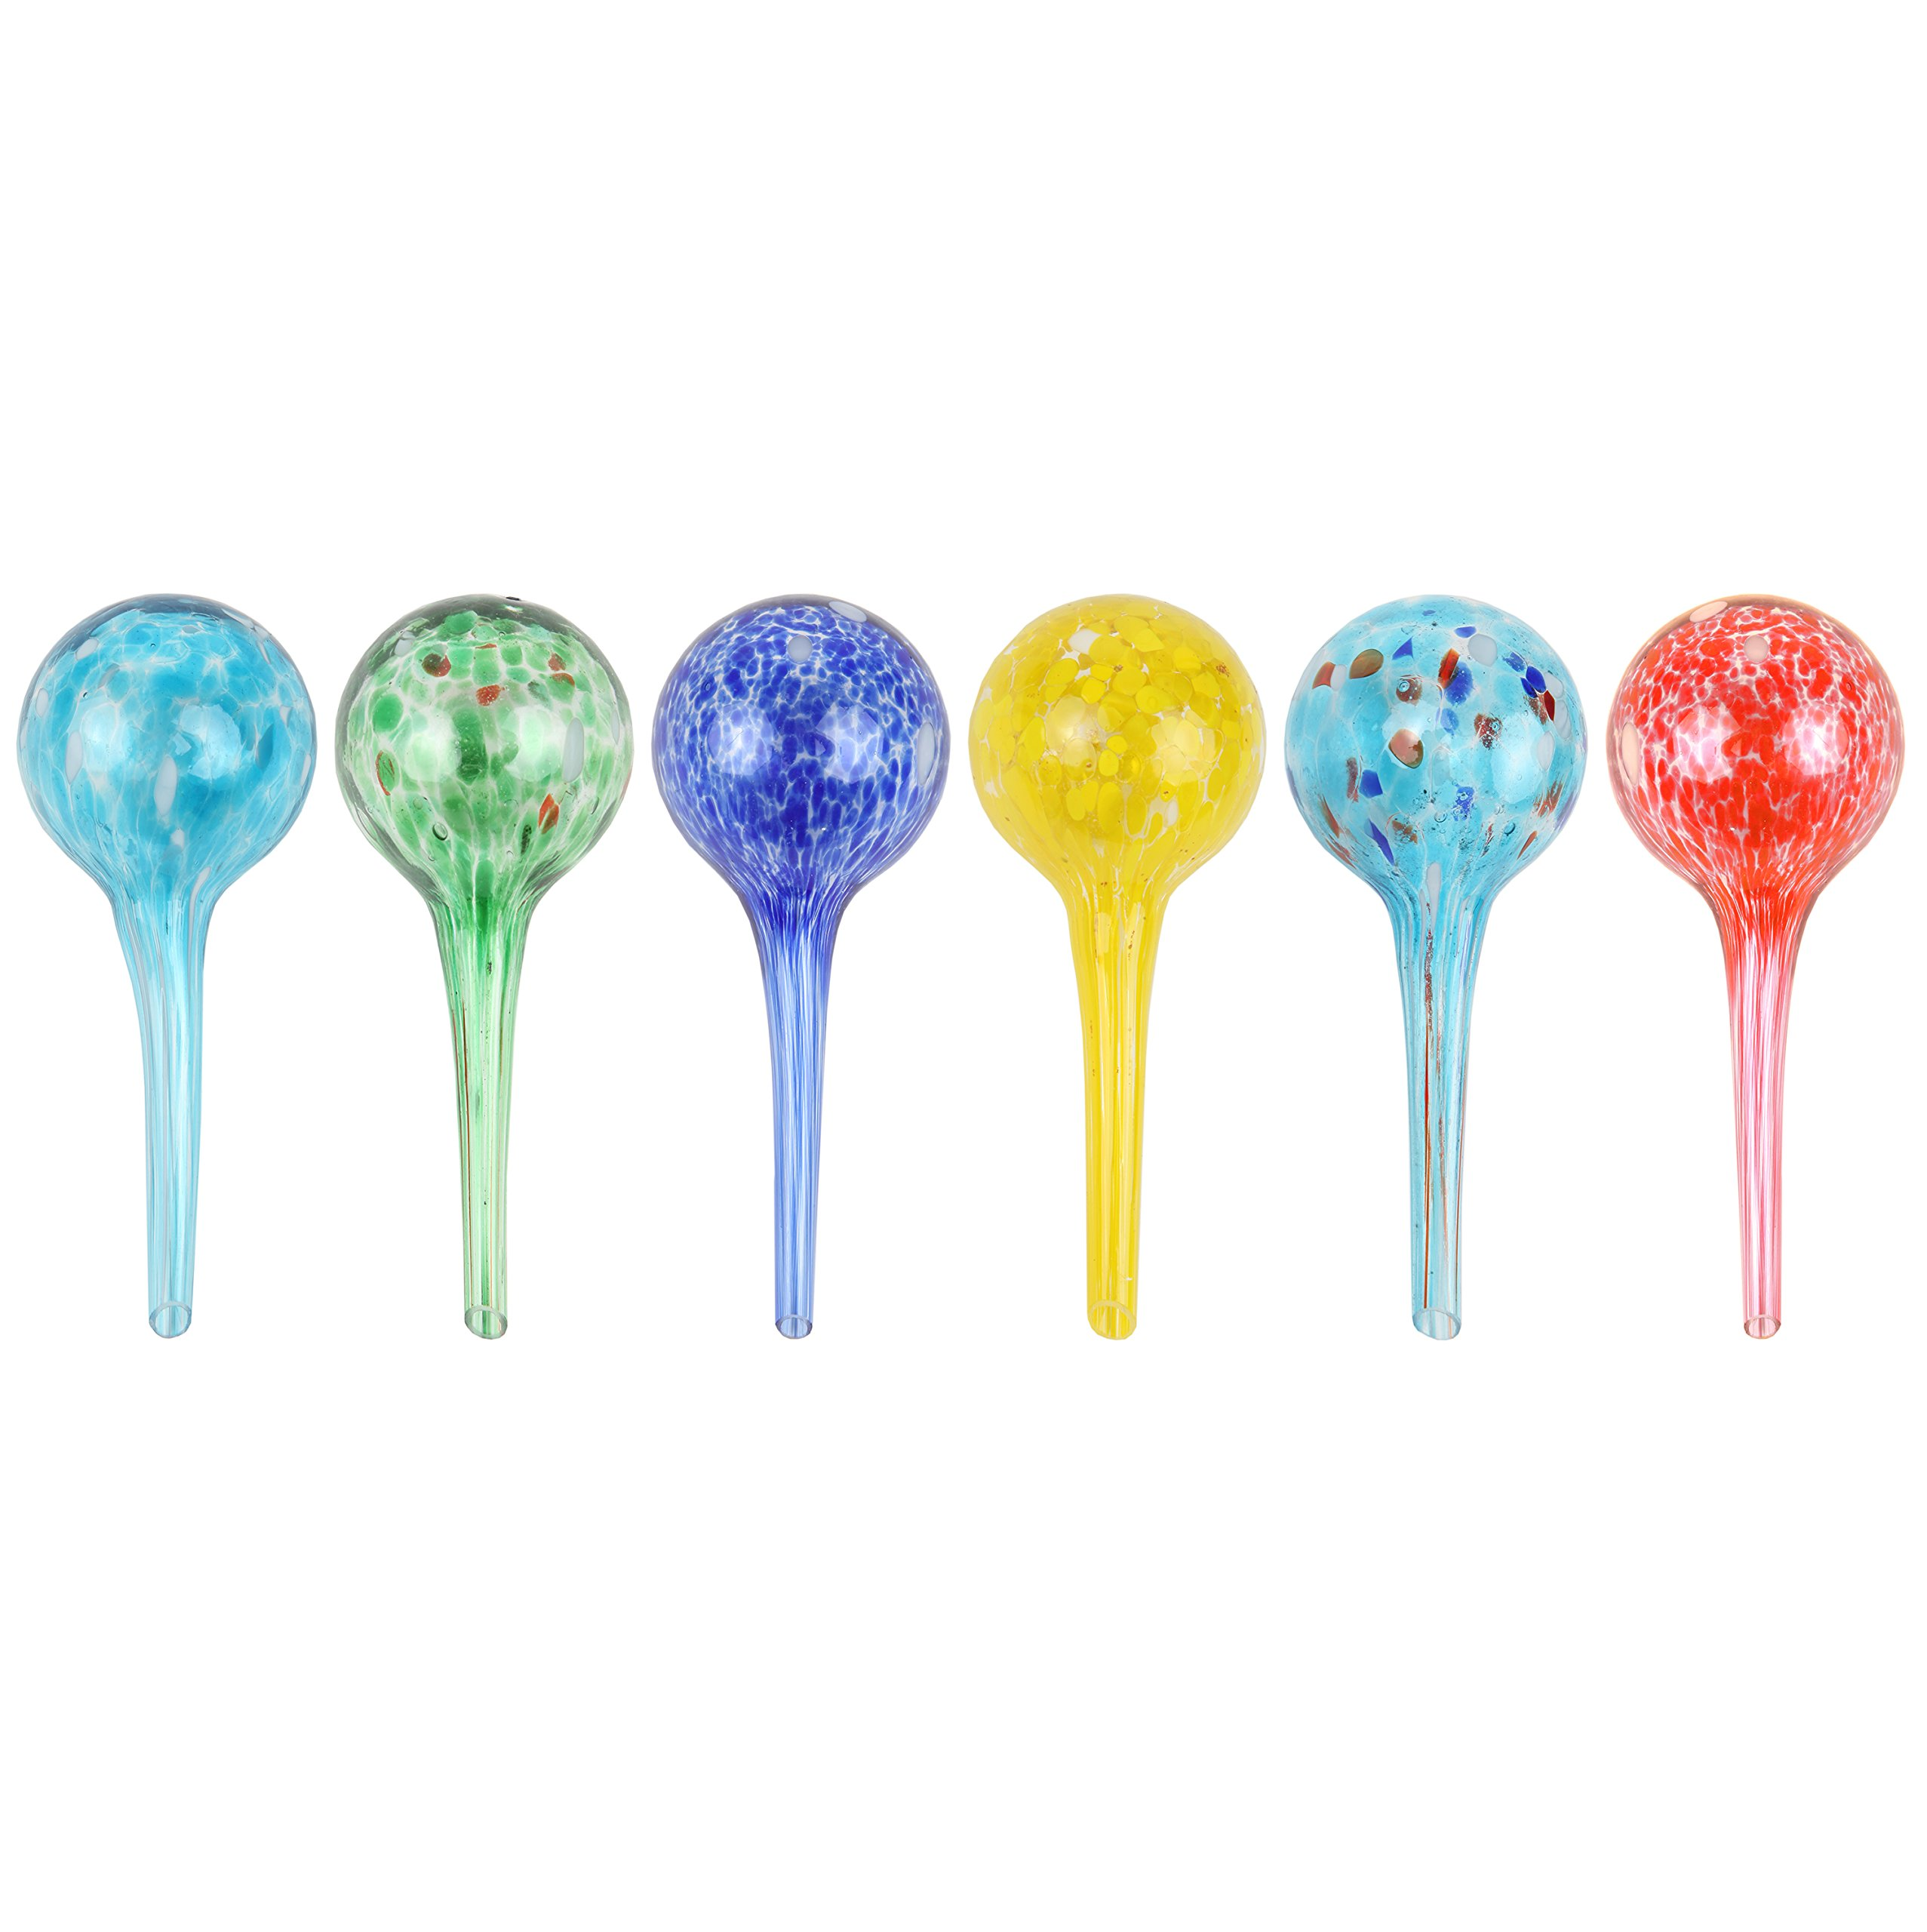 Miles Kimball Set of 6 Small Multicolored Glass Plant Watering Globes - Each Measures 6'' L x 2.5'' D by Miles Kimball